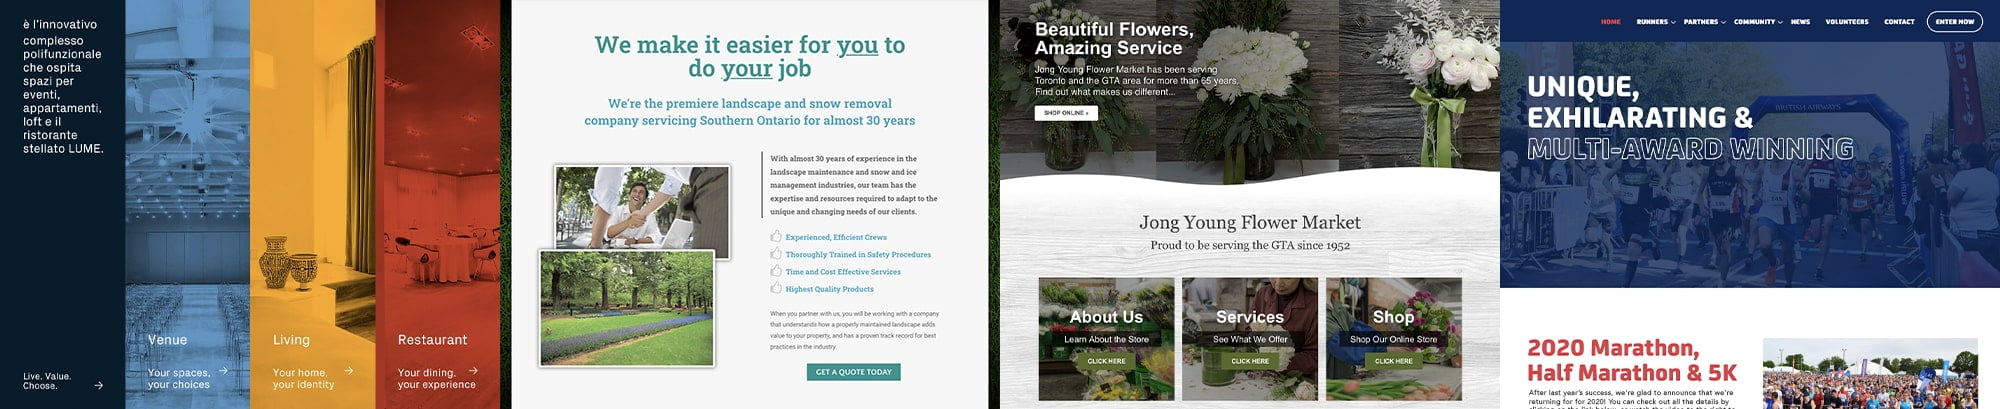 A composition showing 4 web pages designed by One Guy Creative